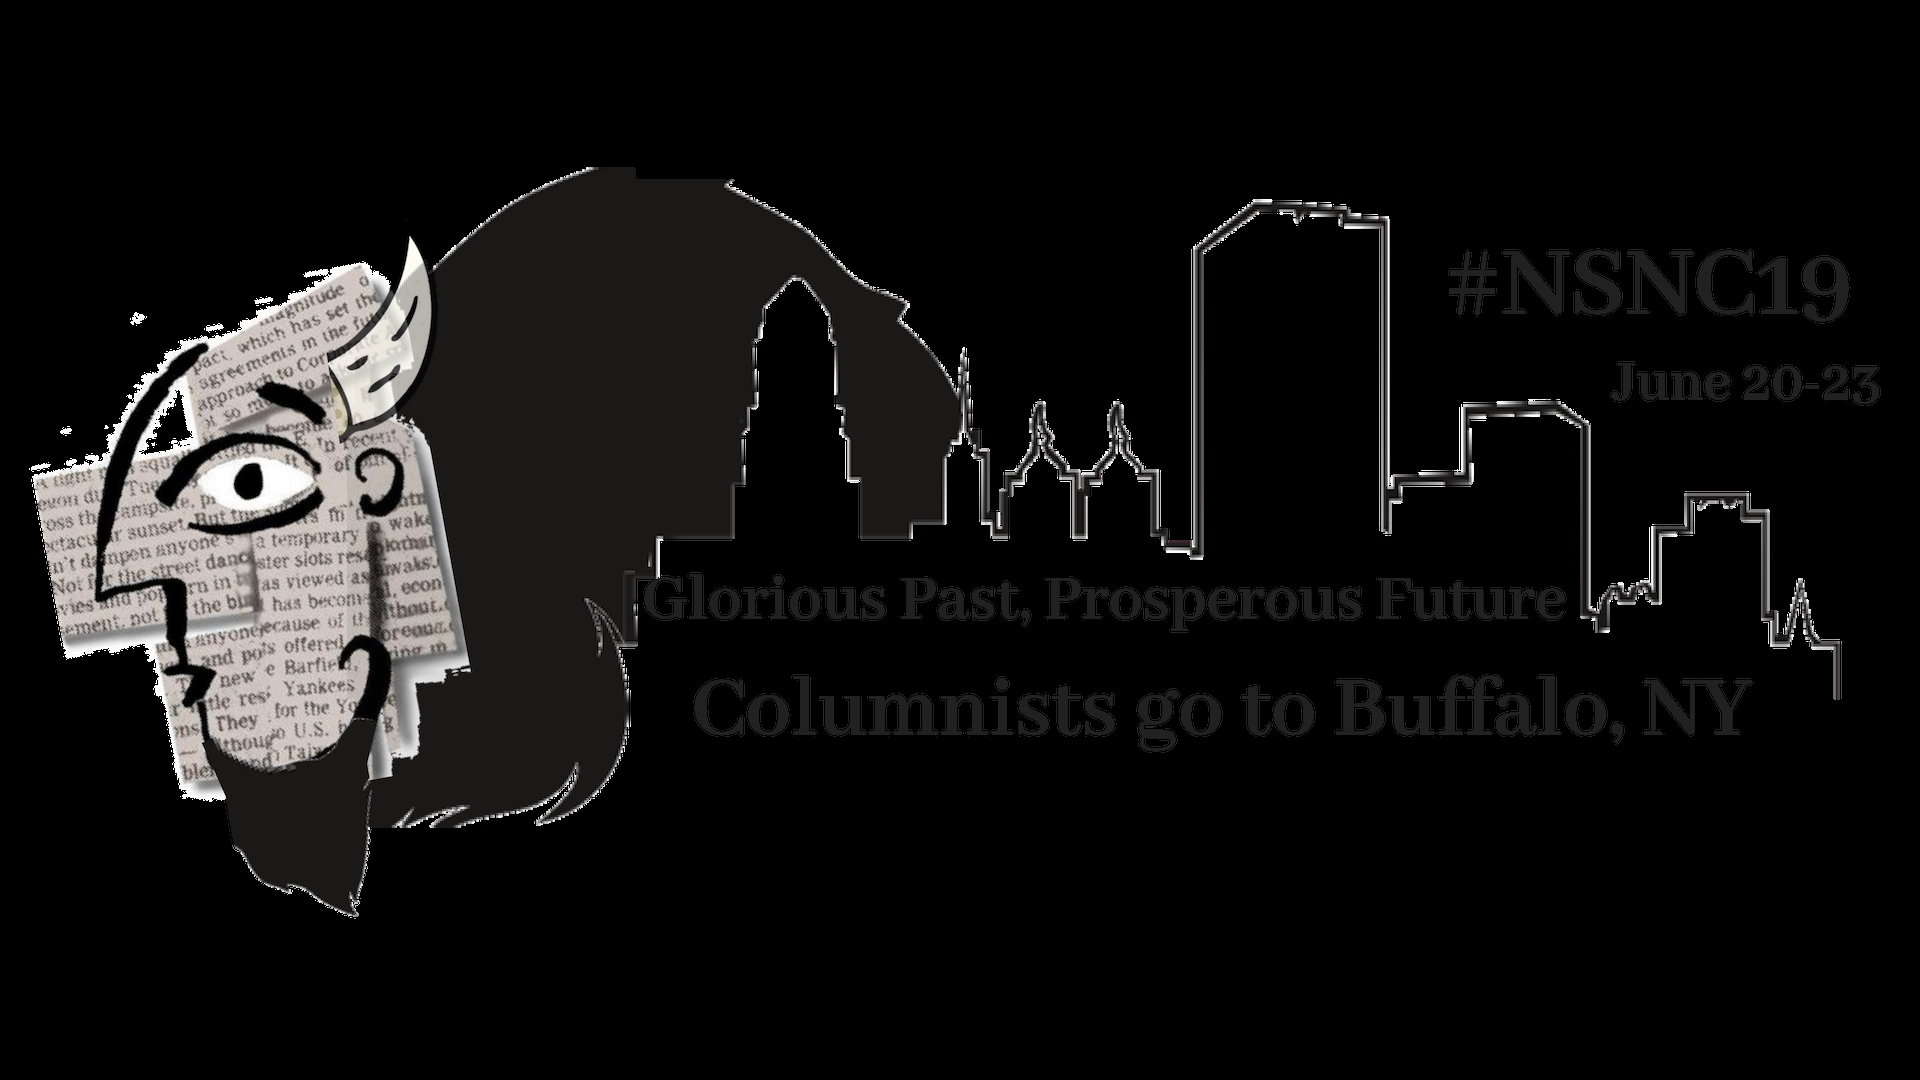 National Society Of Newspaper Columnists Organization For